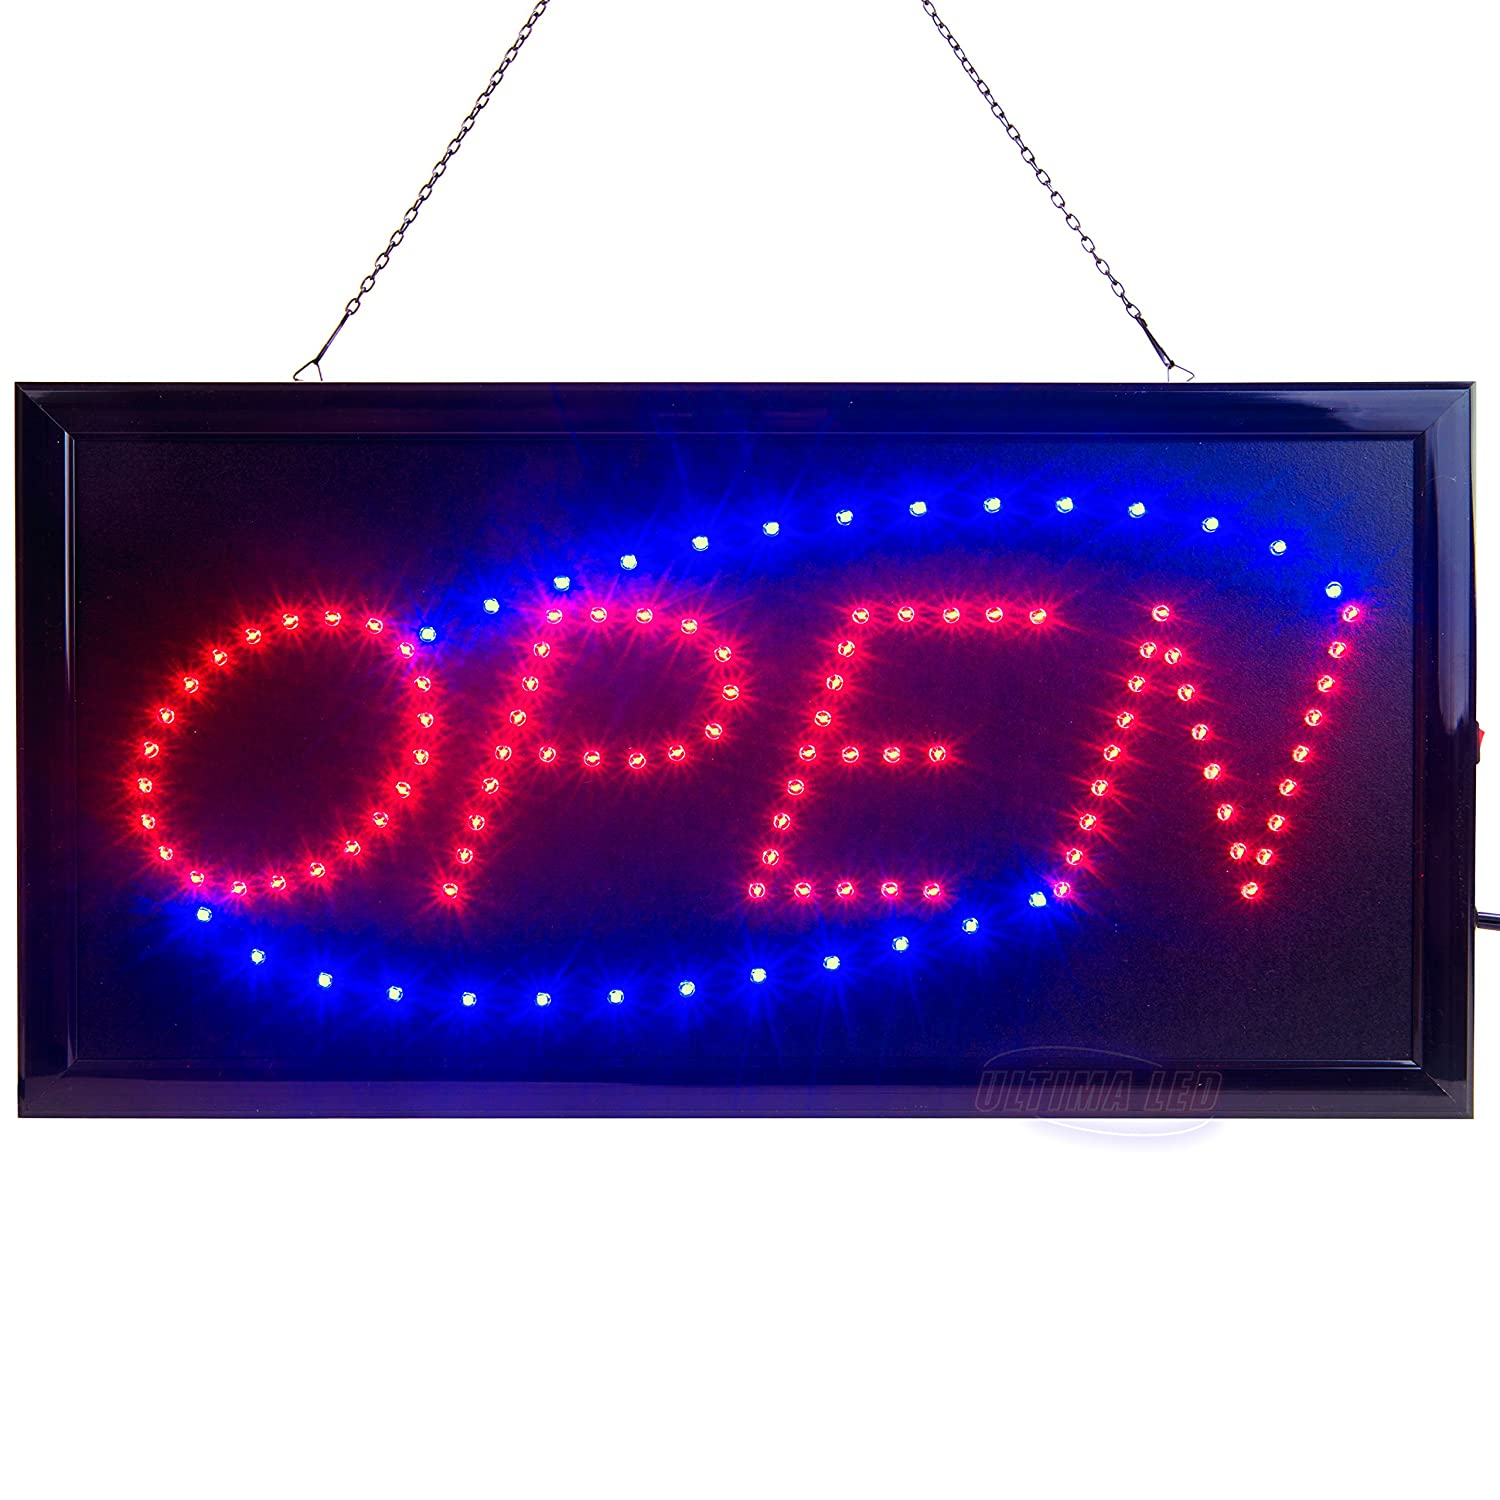 Amazon.com : LED Open Sign for Business Displays: Electric Light up ...